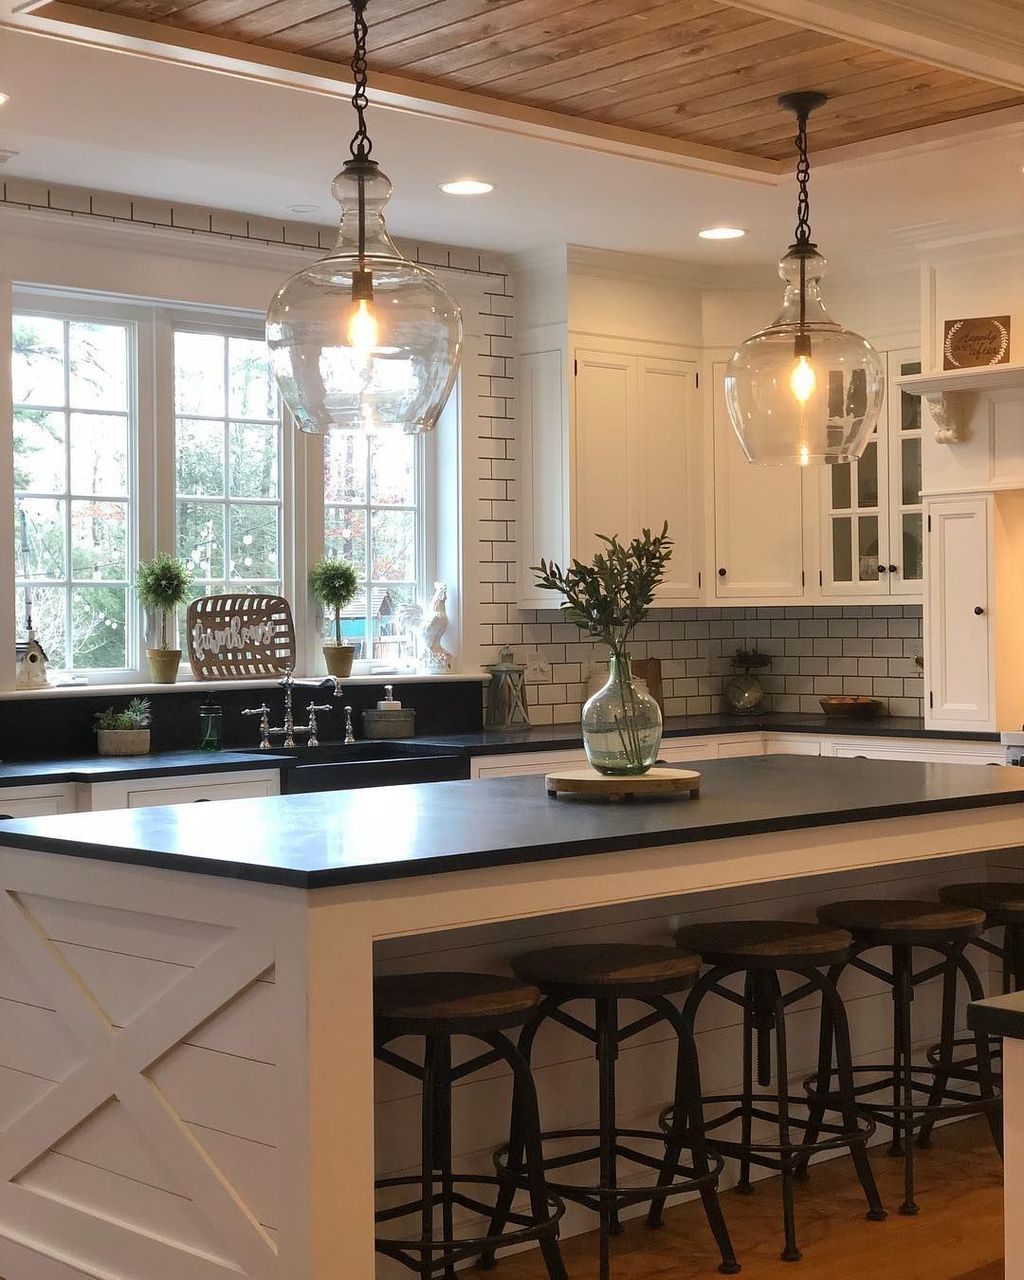 34 Gorgeous Modern Farmhouse Kitchens You Never Seen Before